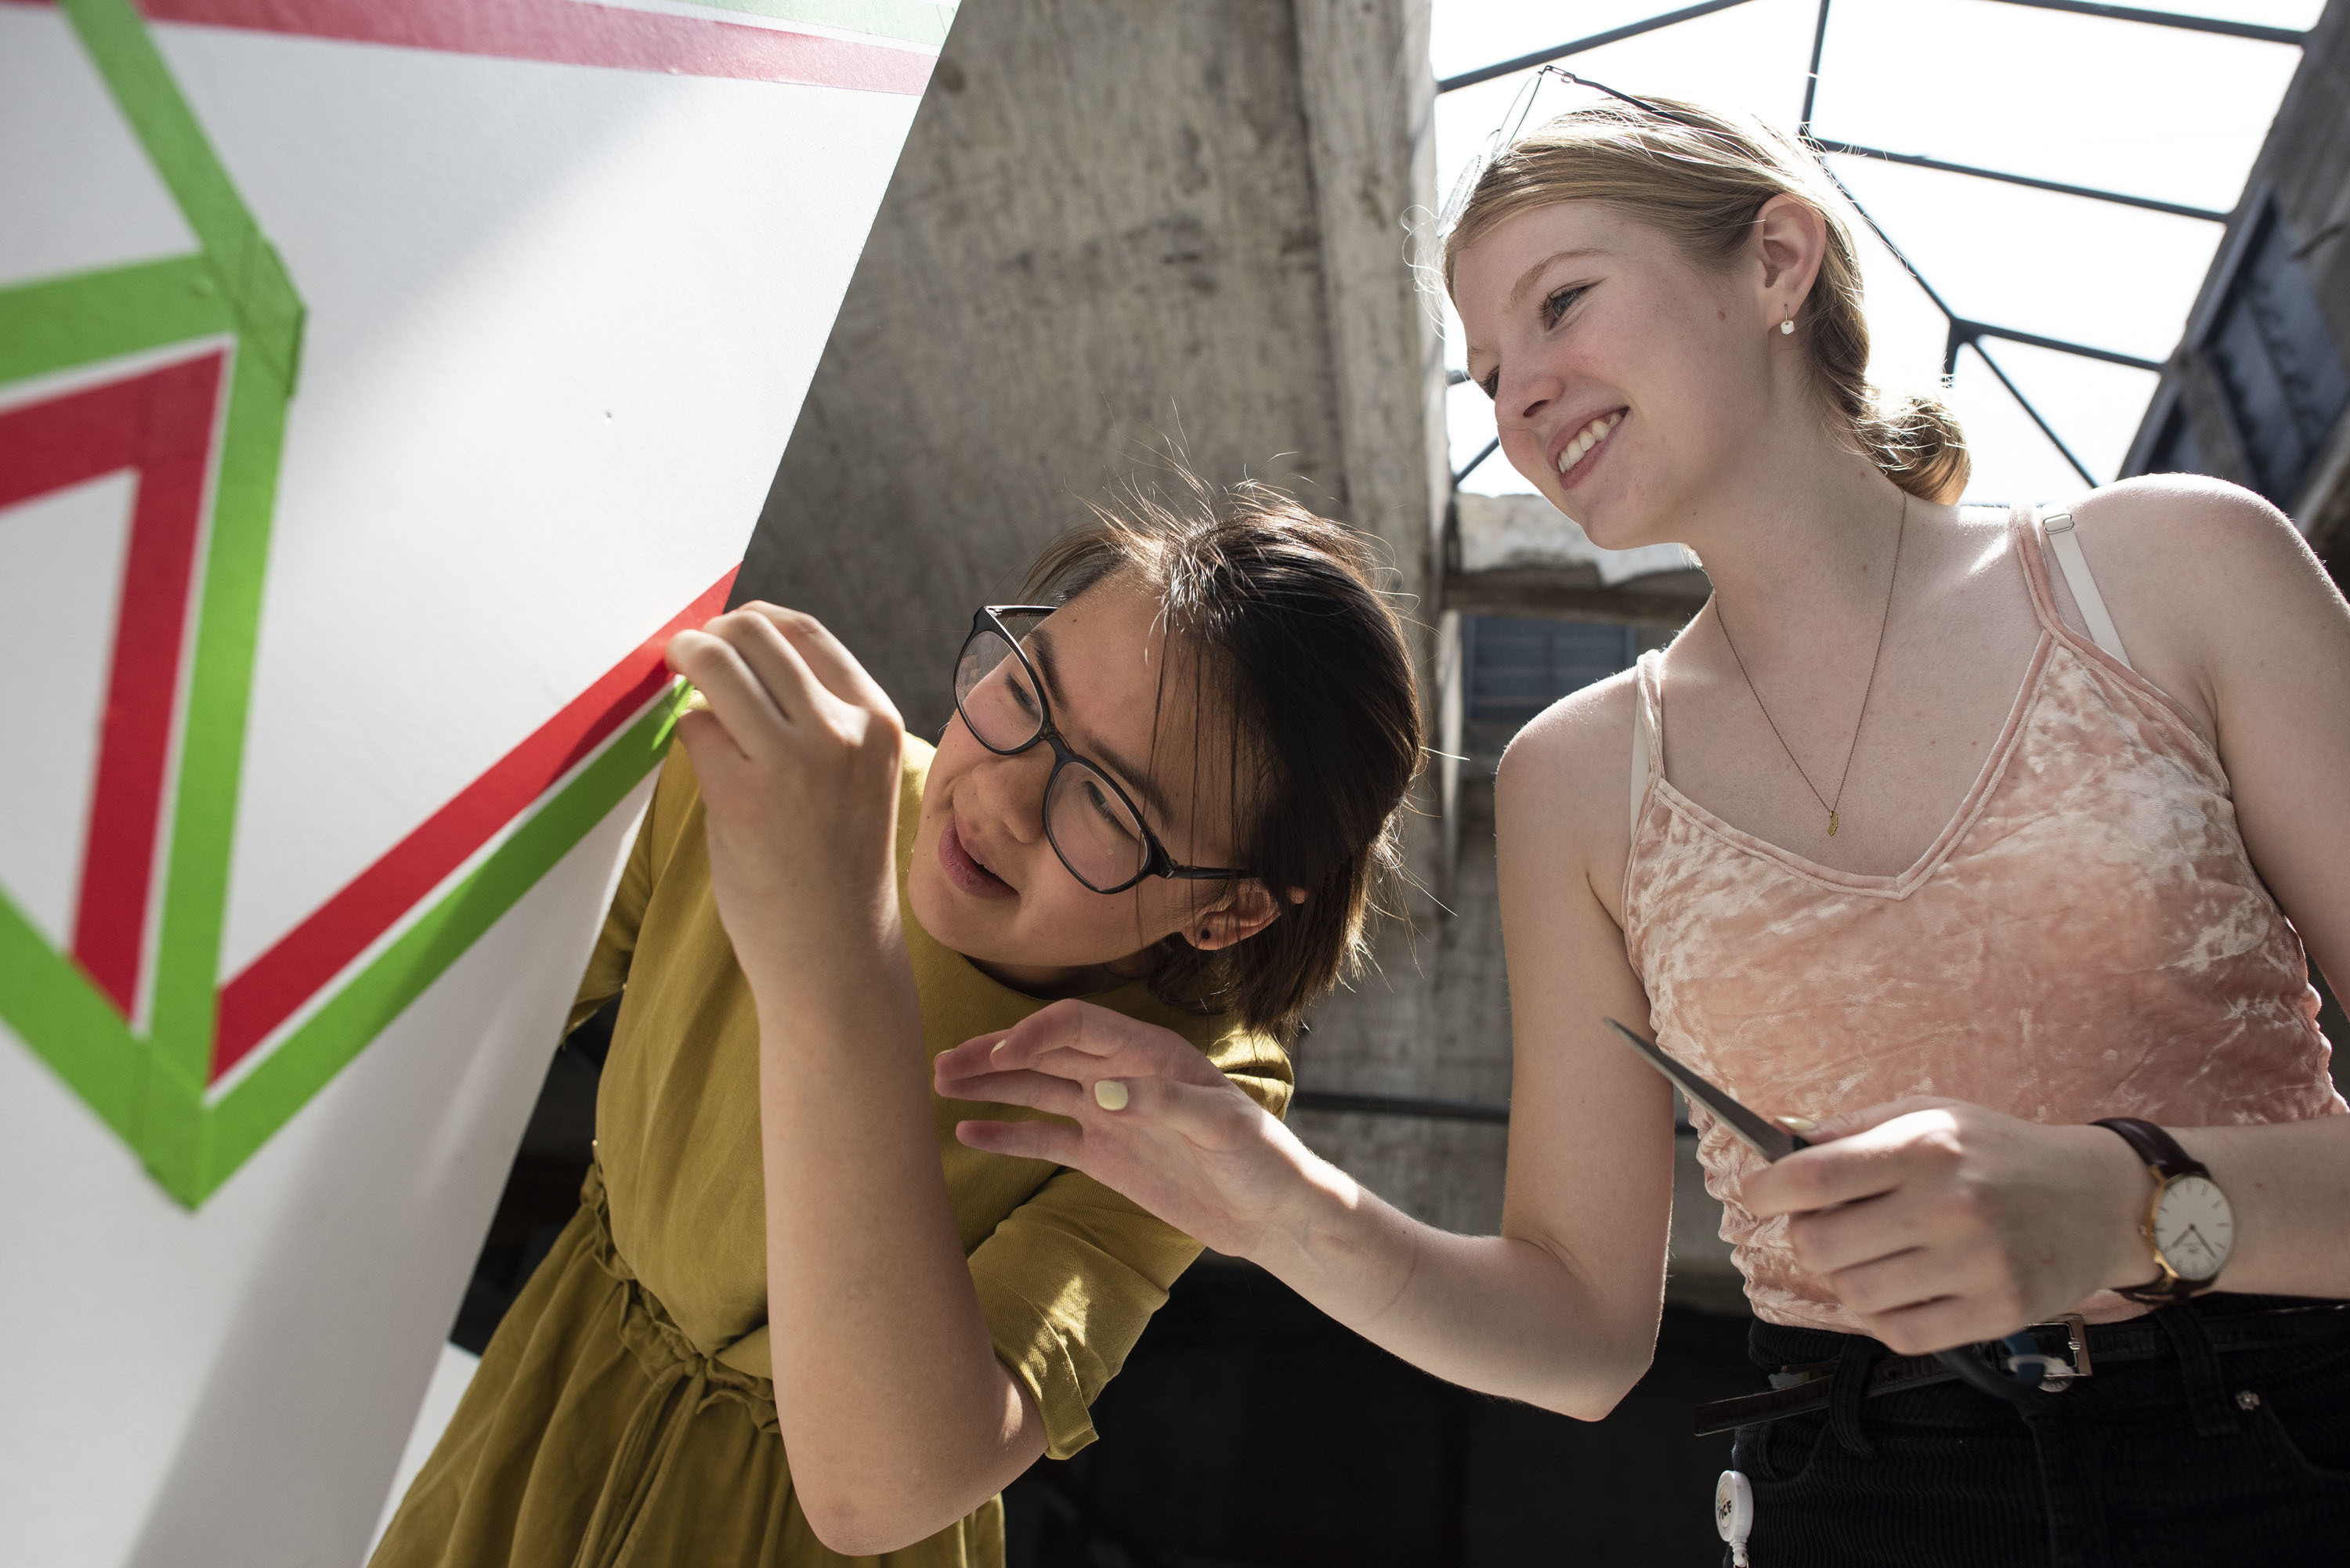 two girls working on an architectural model